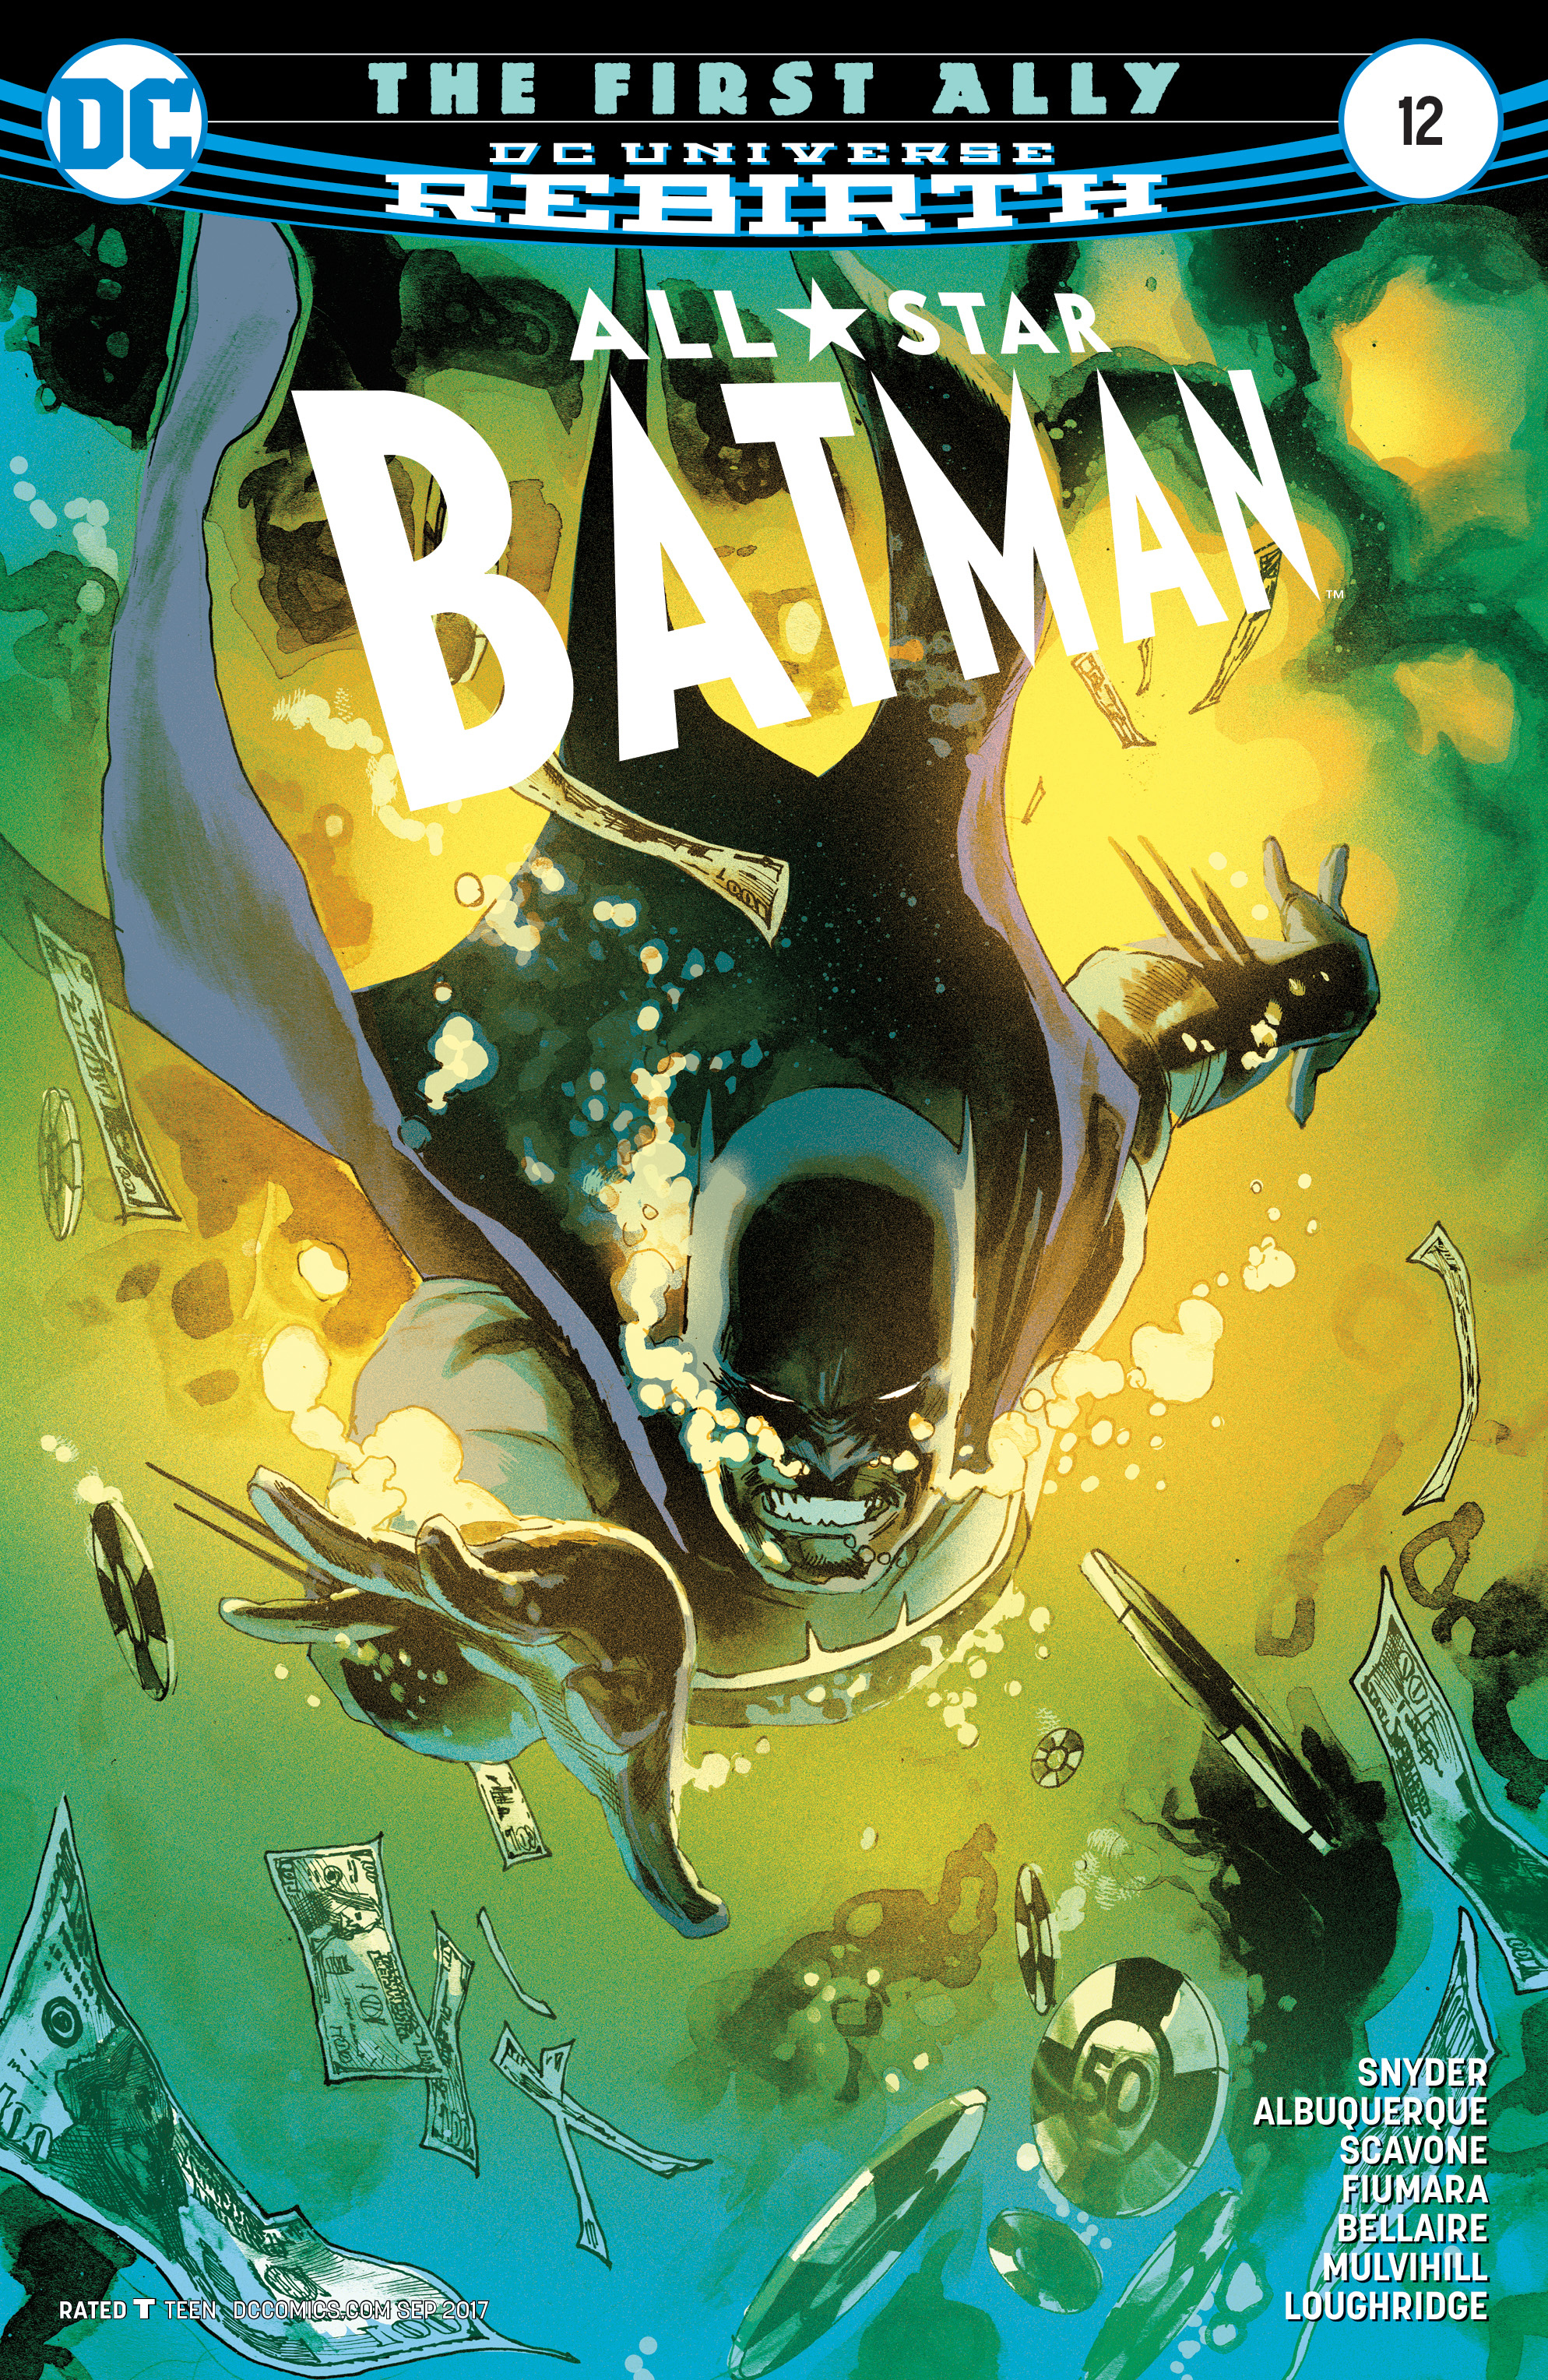 ALL STAR BATMAN #12